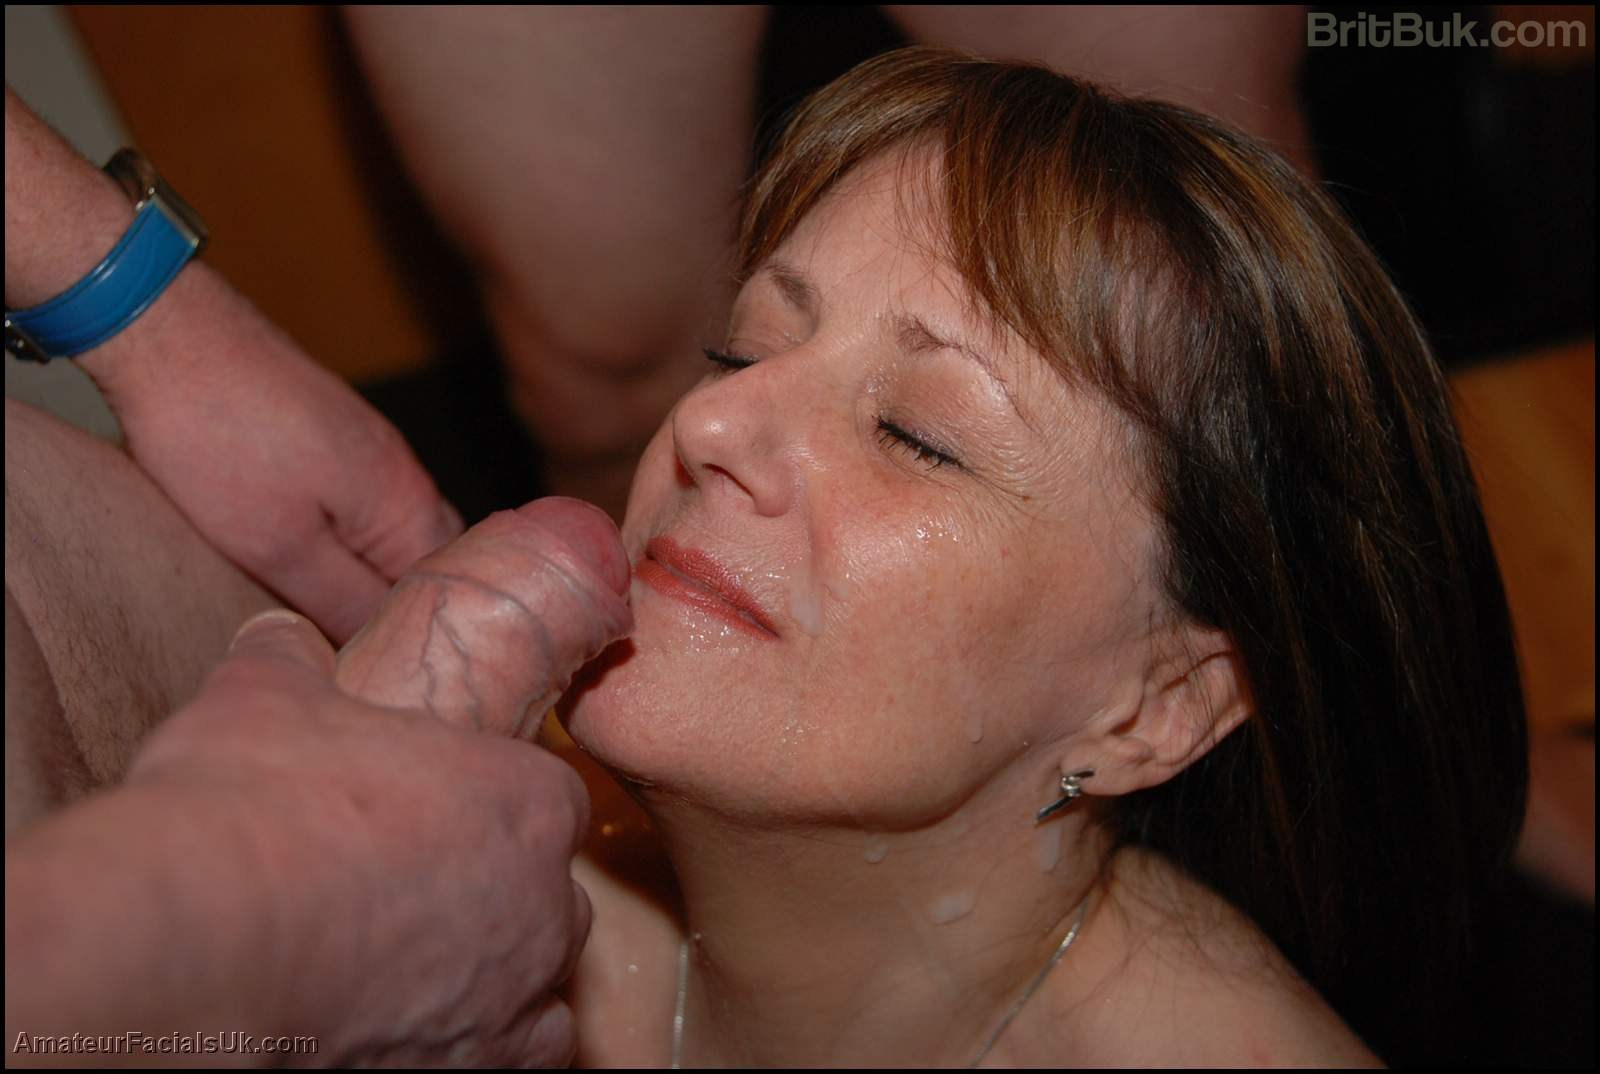 Opinion, amateur milf facial bukkake Unfortunately! think